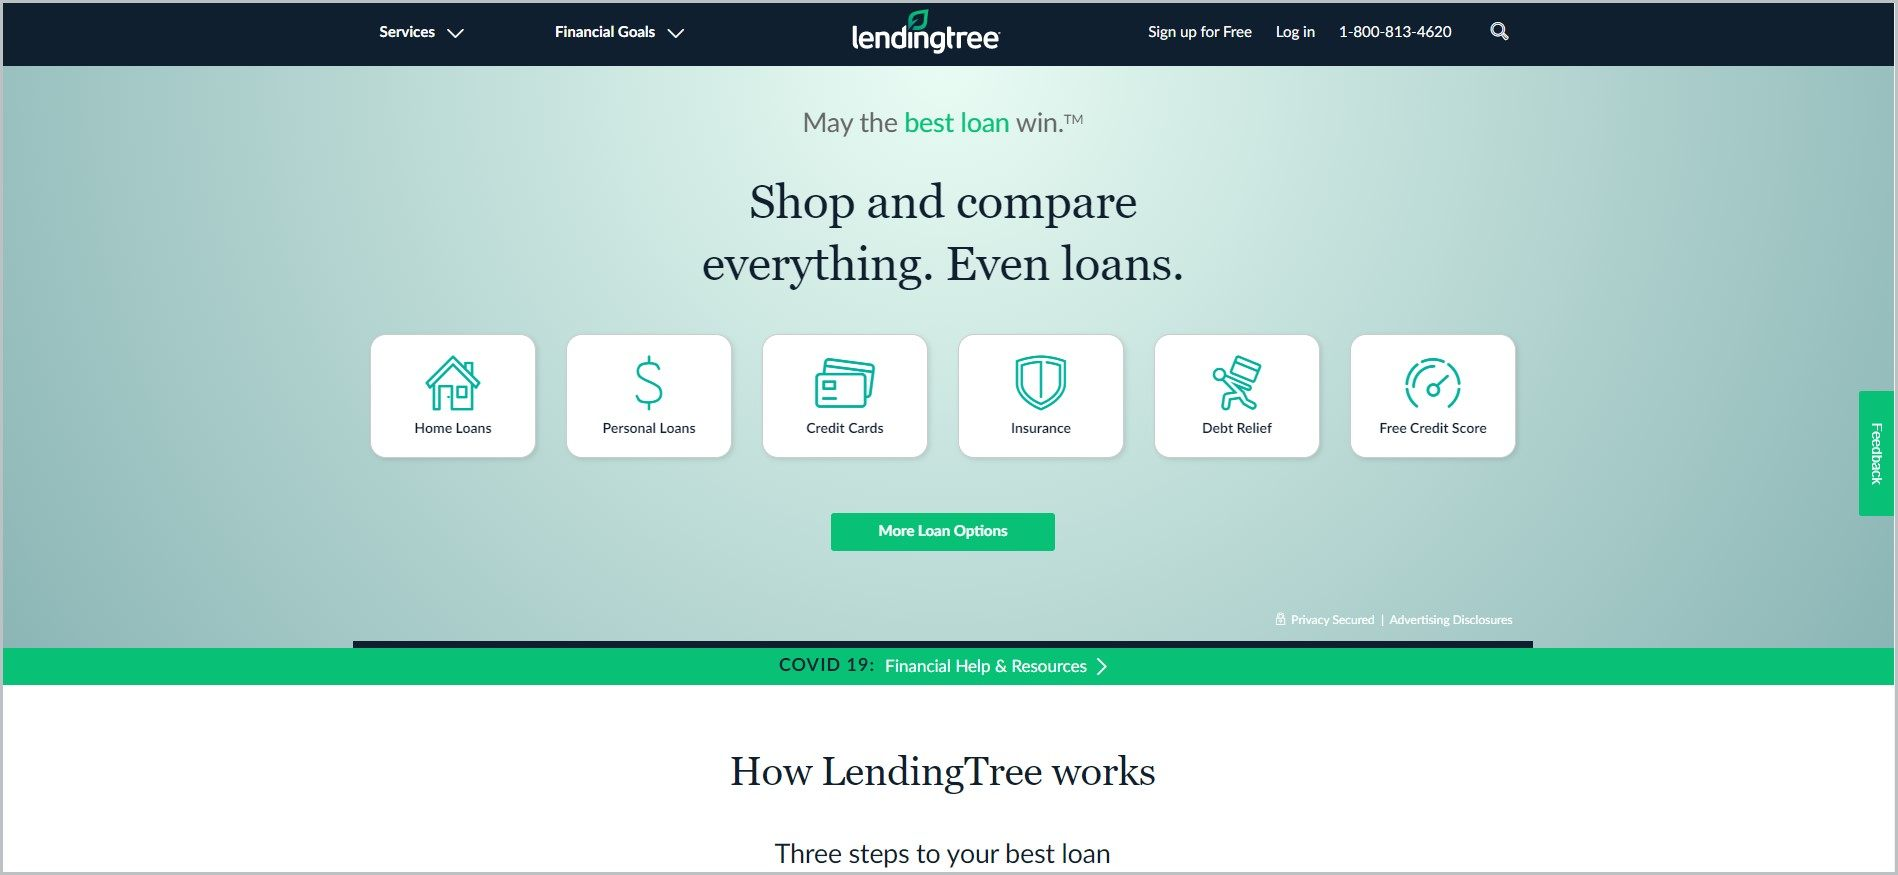 screenshot of LendingTree homepage with black header bearing the website's name and main navigation menu, it also showcases the services being offered and a green call to action button